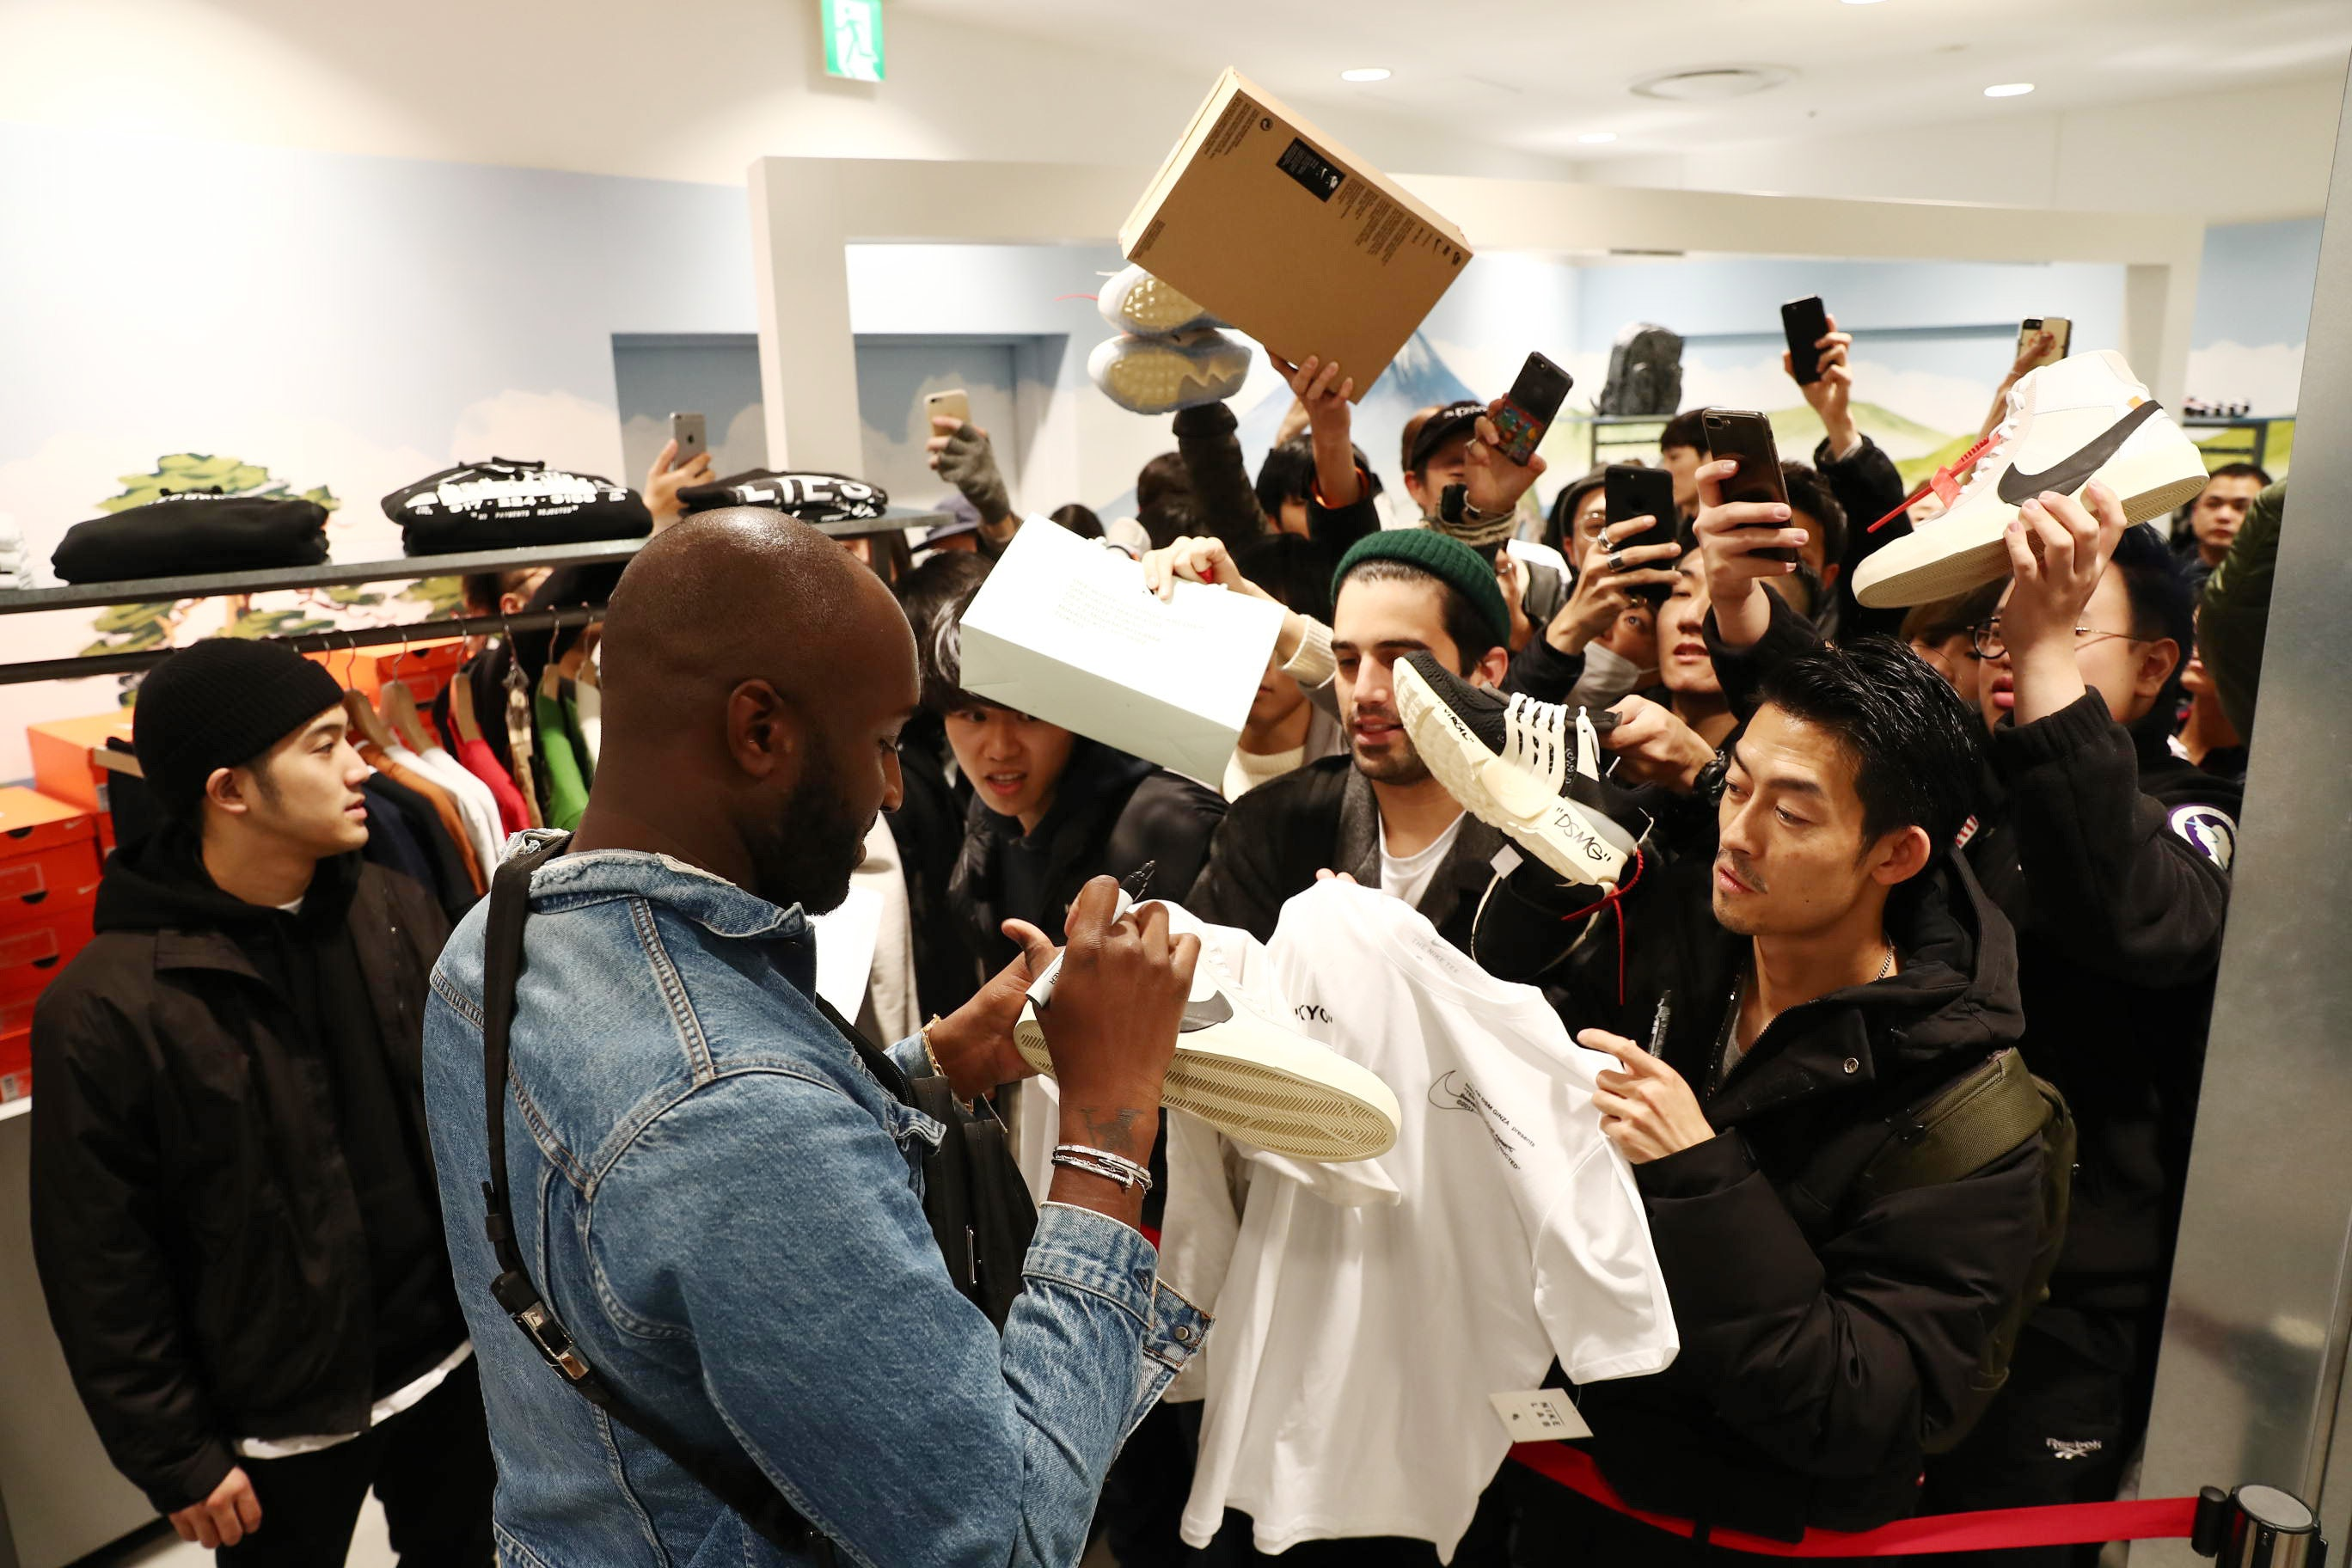 Virgil Abloh at the launch event for his Nike collaboration 'The Ten' at Dover Street Market Ginza in Tokyo | Source: Courtesy